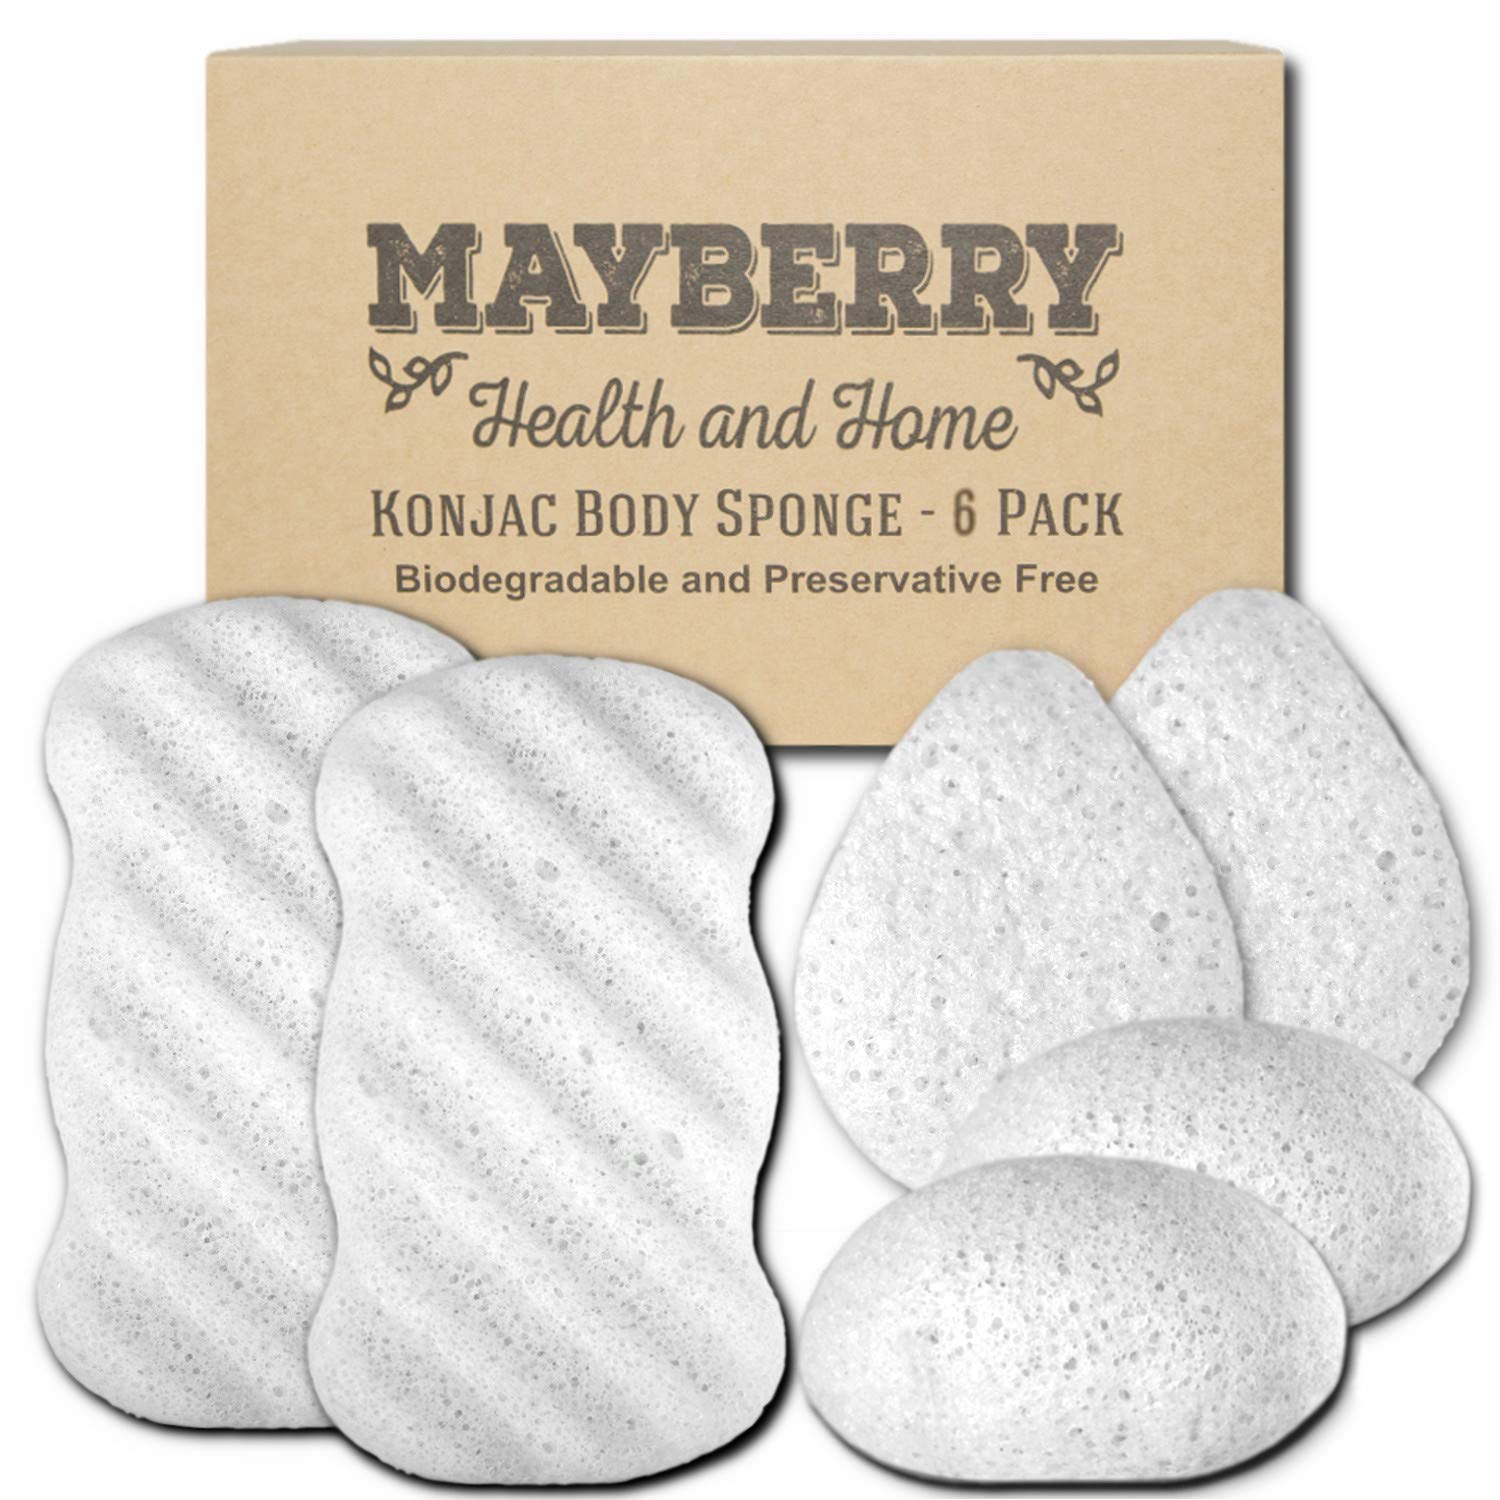 Konjac Body Sponge (6 Pack) Individually Wrapped Multi-Pack Pure (White) Konjac Sponges Offer a Gentle Cleansing Experience for Softer Skin by Mayberry Health and Home